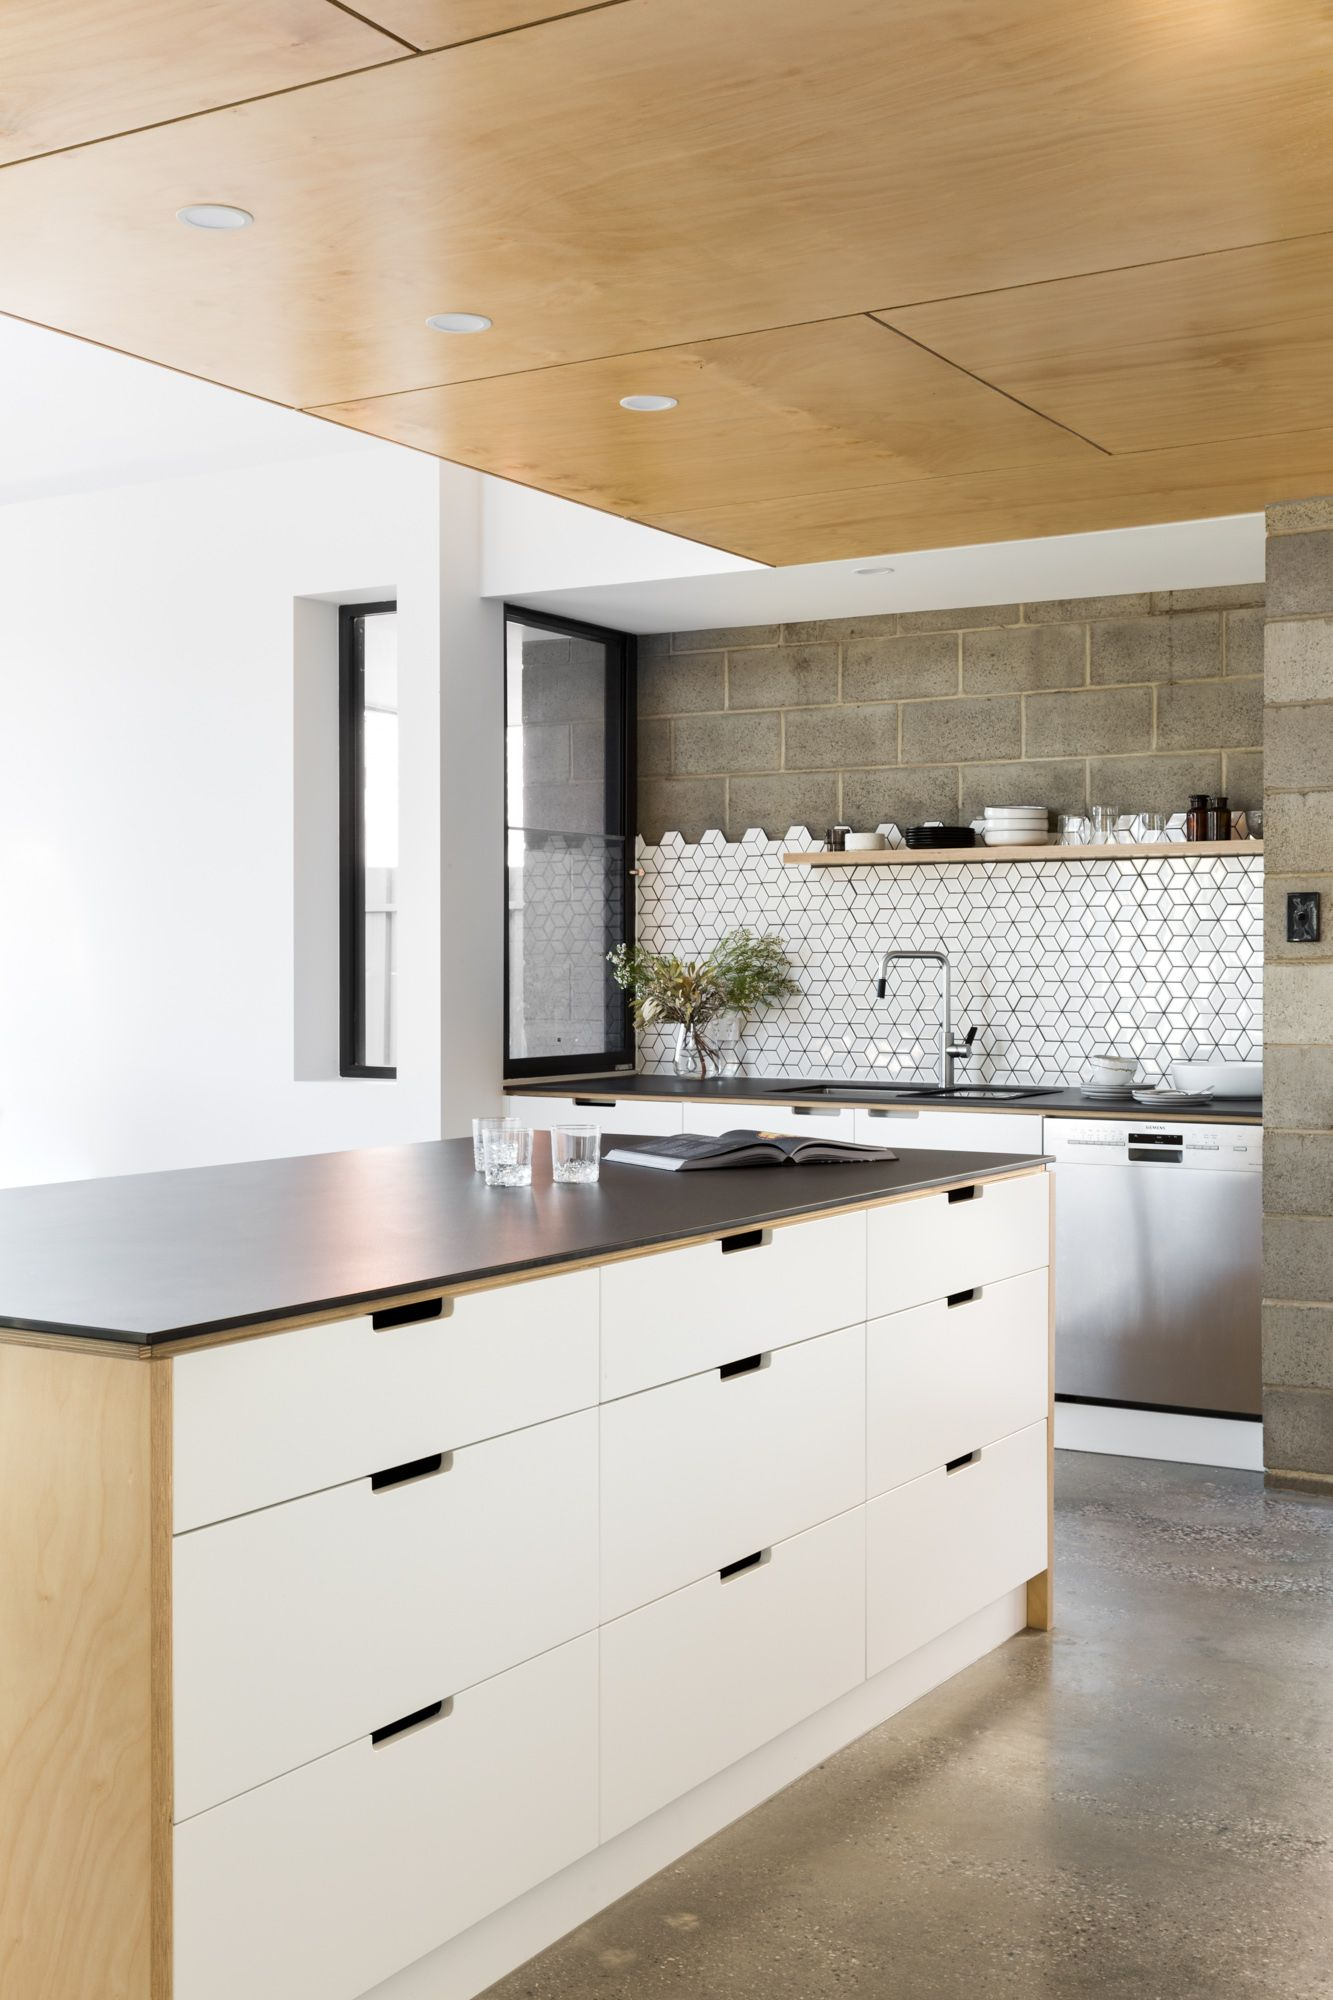 2pac Painted Doors With Notch Out Handle Detail Meet Neolith Nero Tops By Cdkstone Kitchendesign Kitchens Industria Kitchen Design Kitchen Kitchen Styling